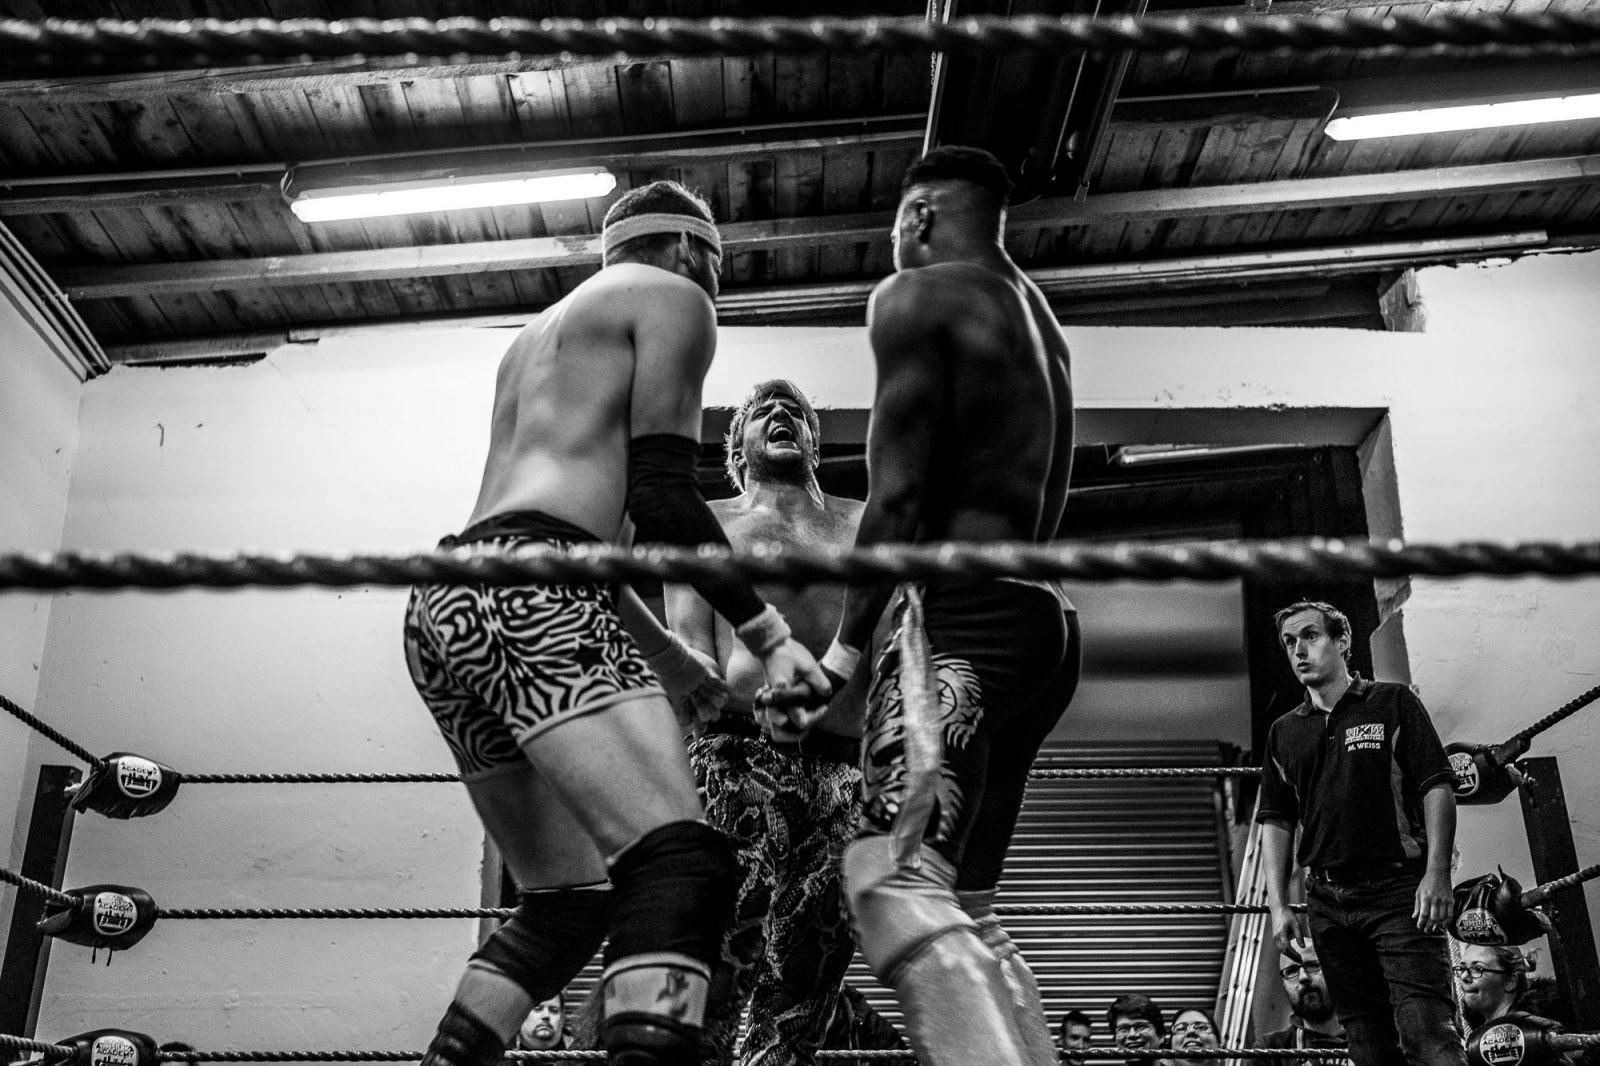 Wrestlers lock up in the ring